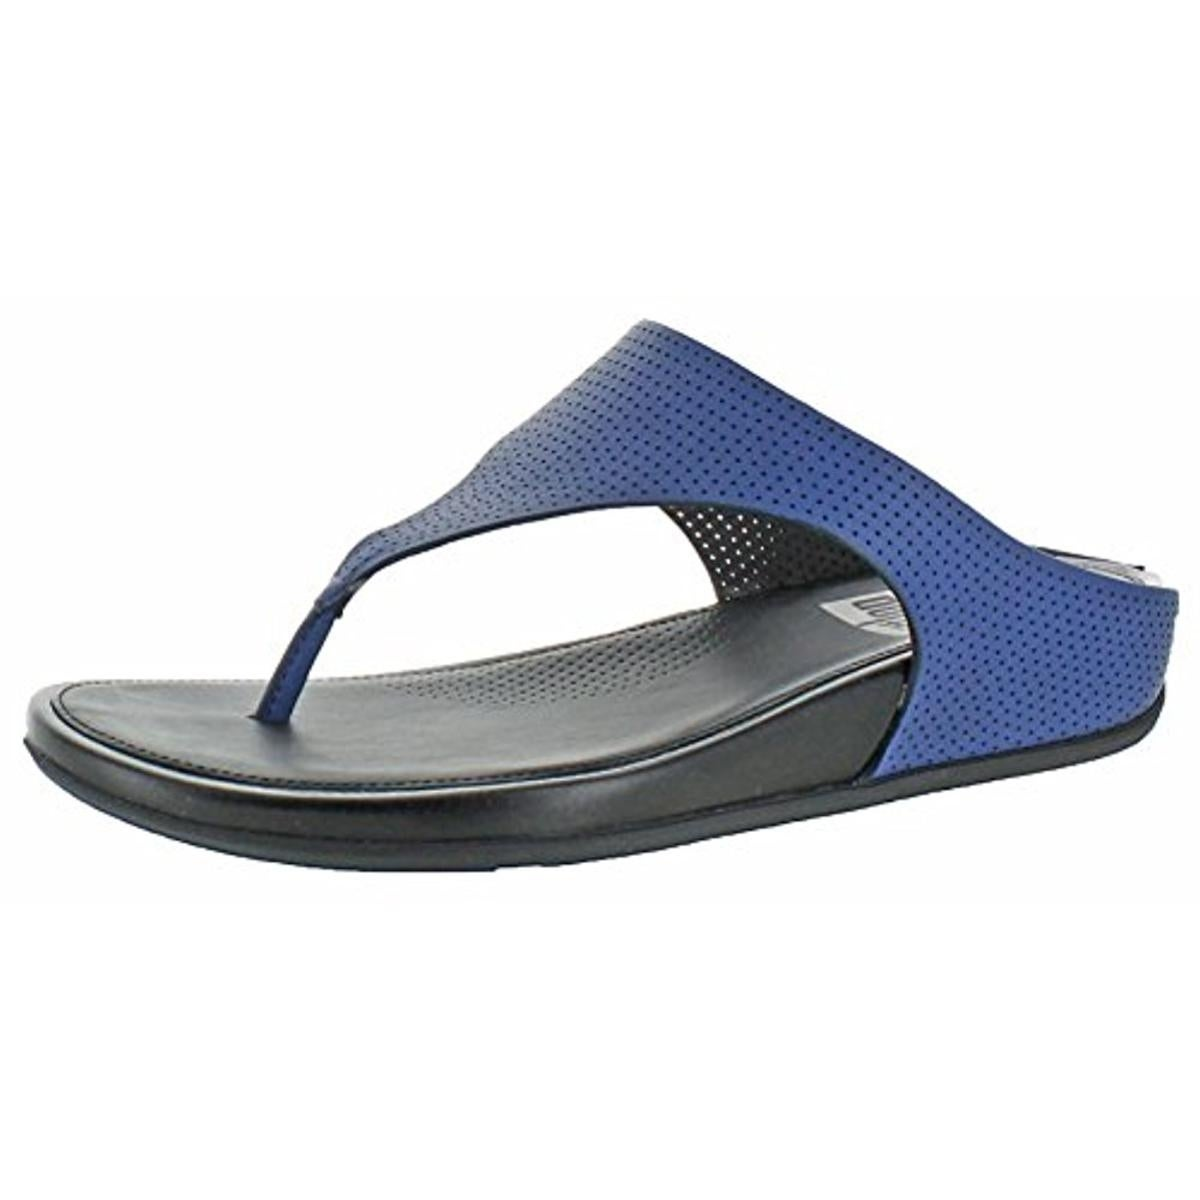 1fe7bfc0c Shop Fitflop Womens Banda Thong Sandals Open Toe Cushioned - Free Shipping  Today - Overstock - 21457463